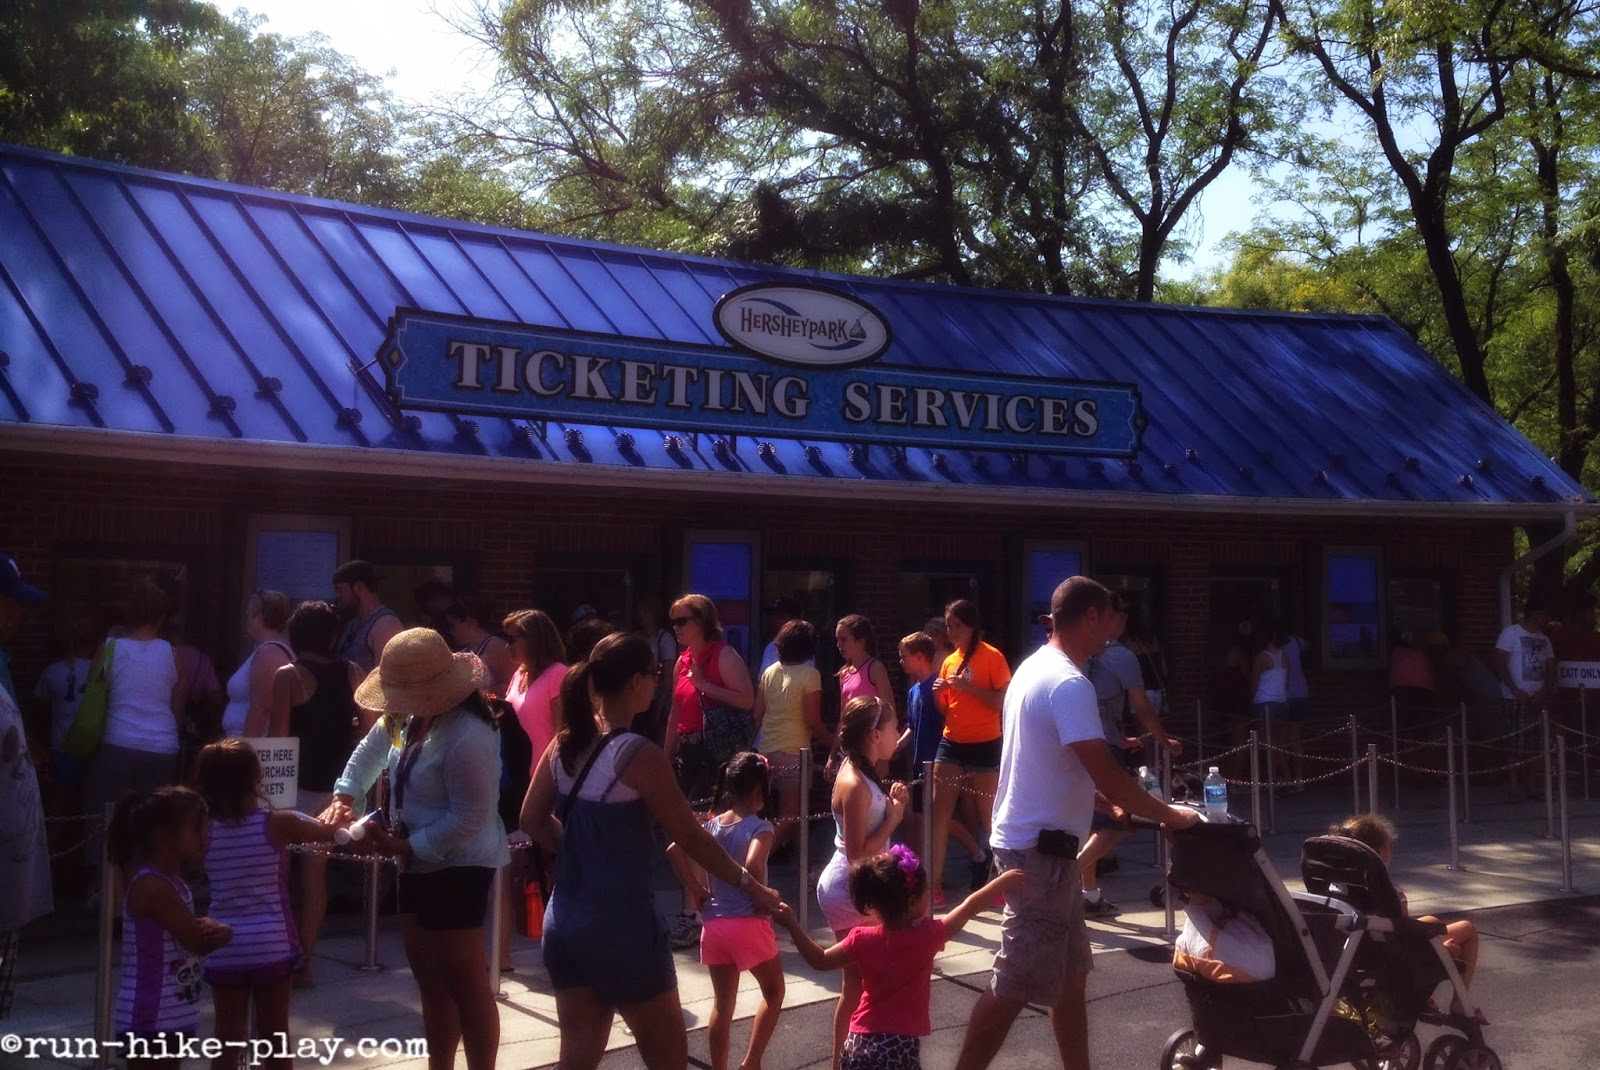 Hershey Park Ticketing